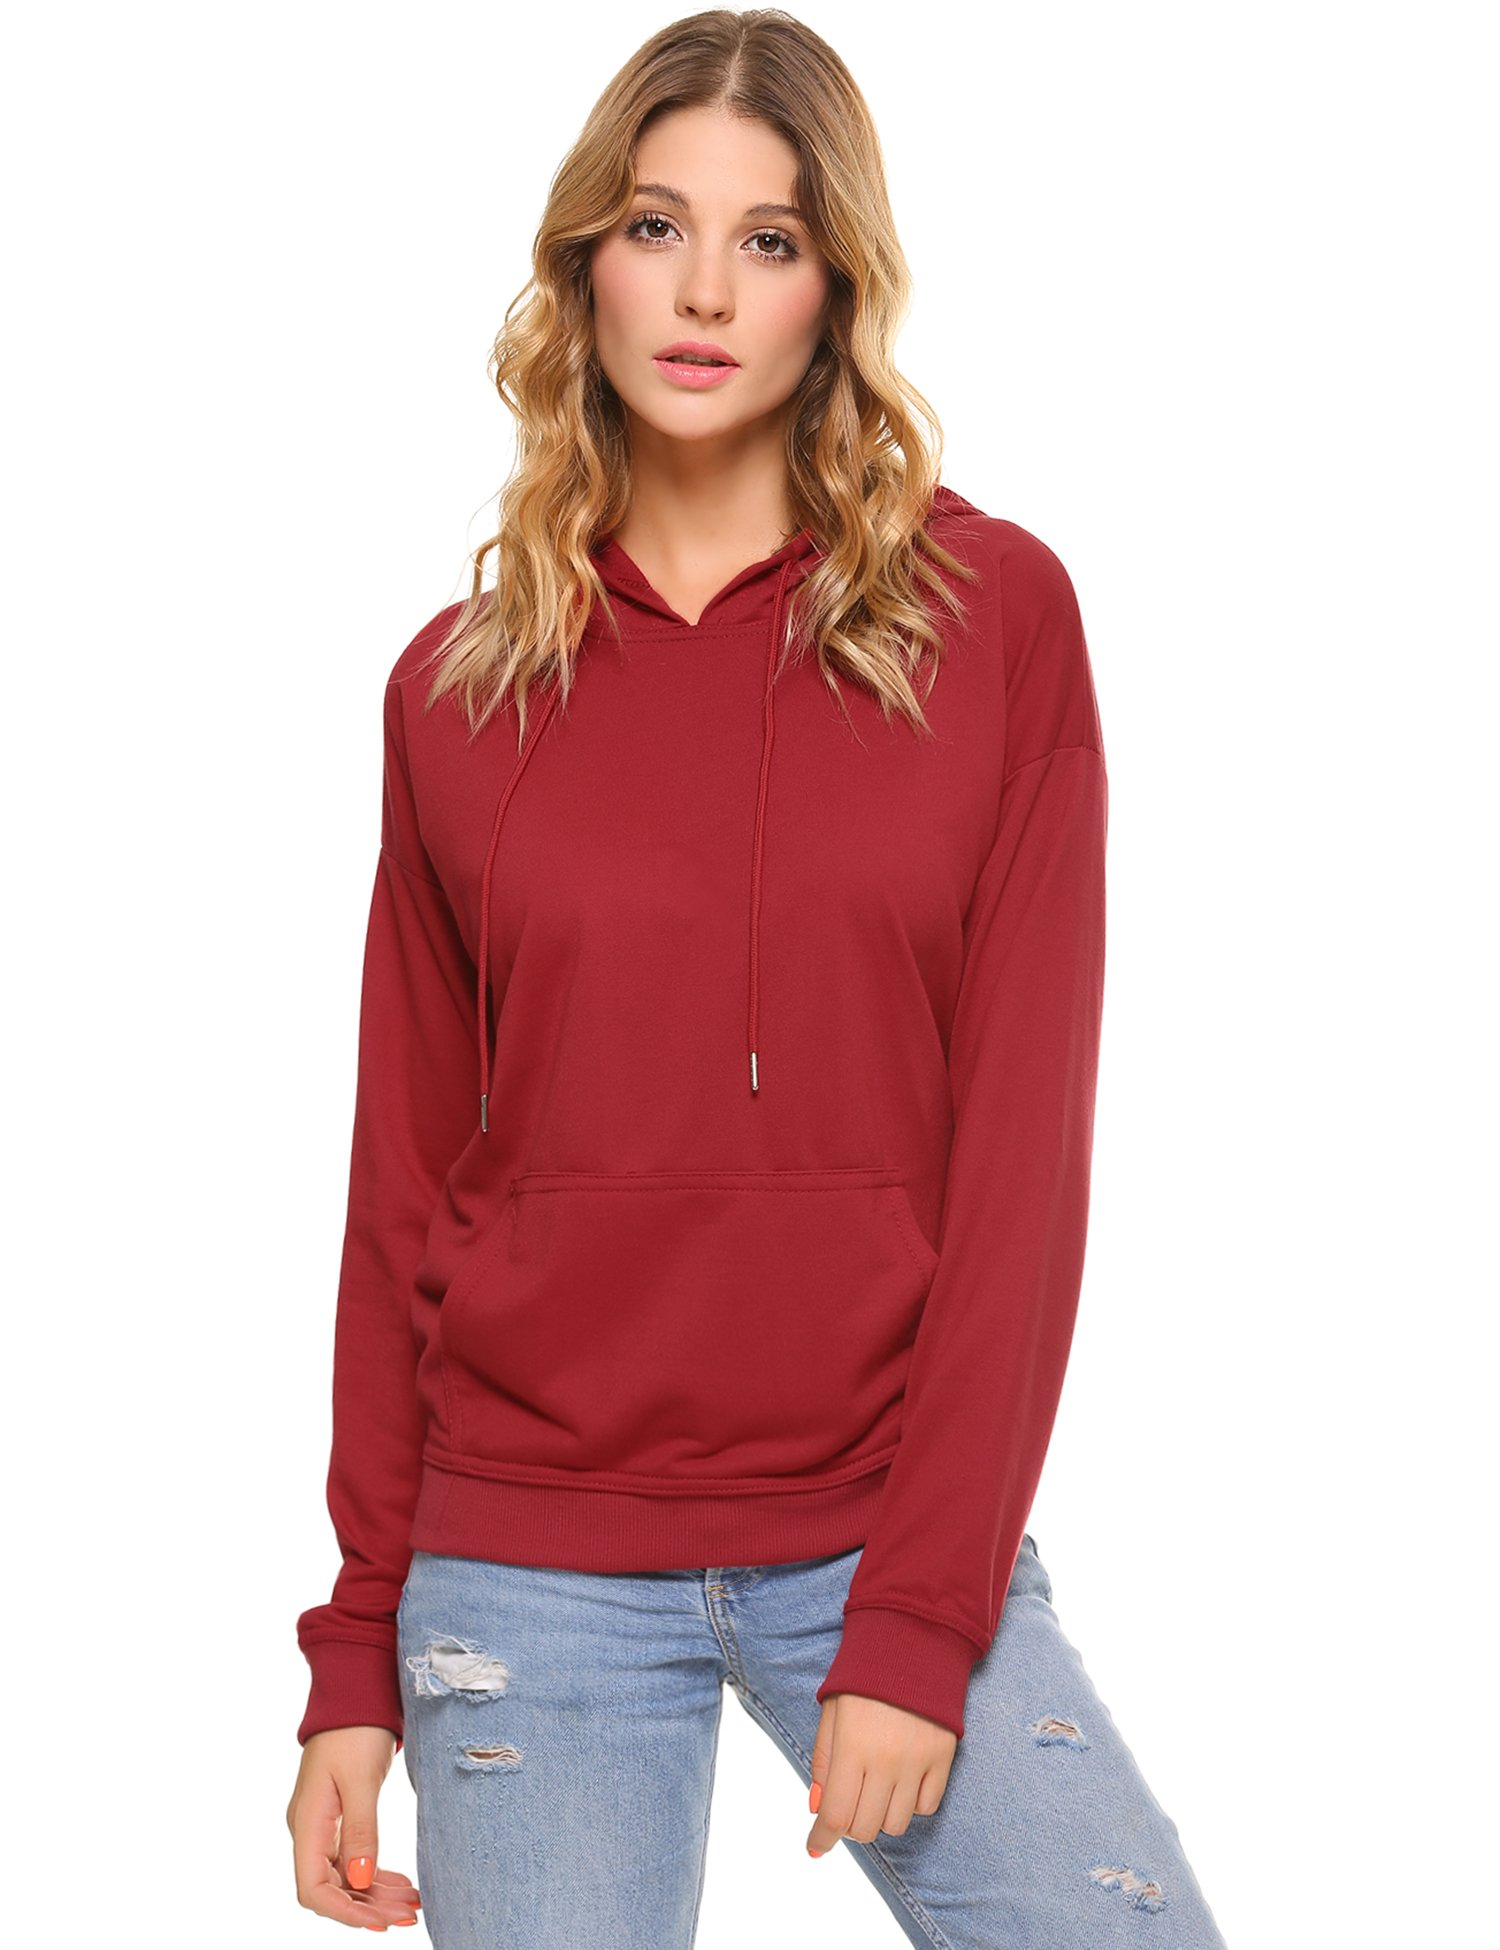 Aibrou Womens Sweatshirt Striped Long Sleeve Casual Pullover Hoodie with Pocket